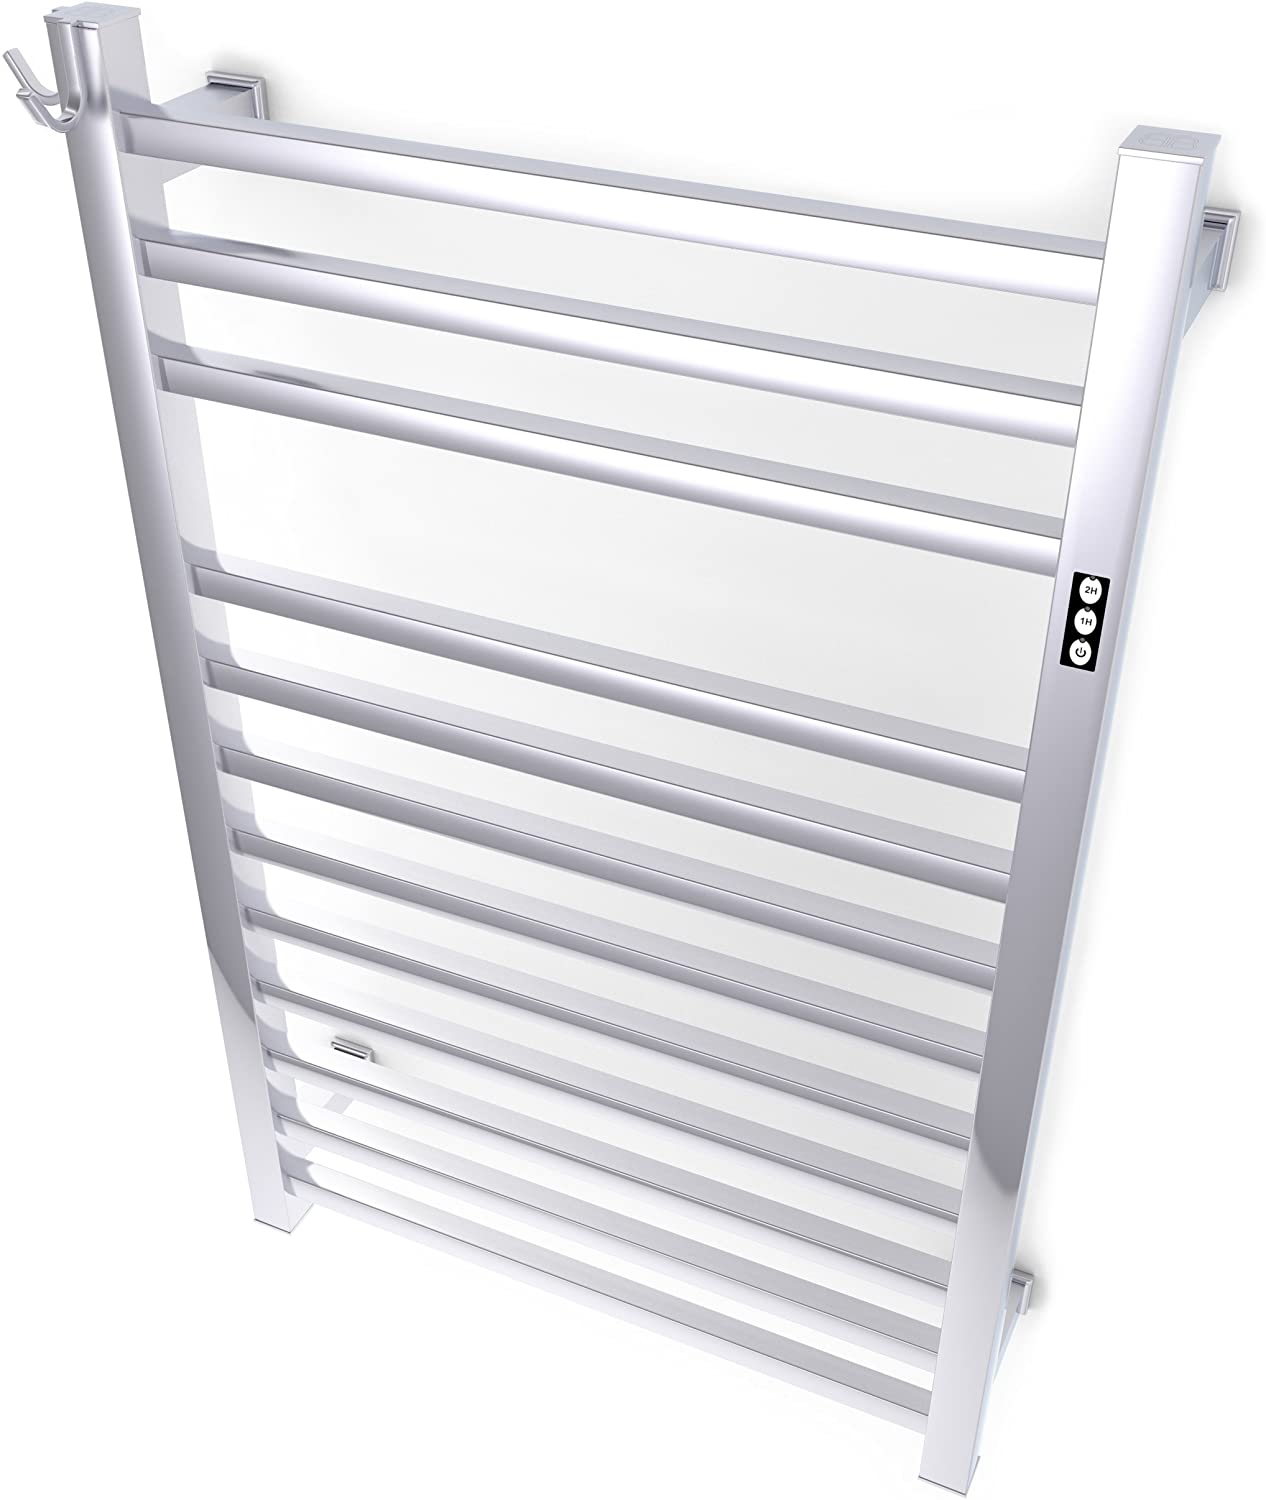 Brandon Basics Wall Mounted Electric Towel Warmer With Built In Timer And Hardwired And Plug In Options Stainless Steel Brushed Amazon Ca Home Kitchen